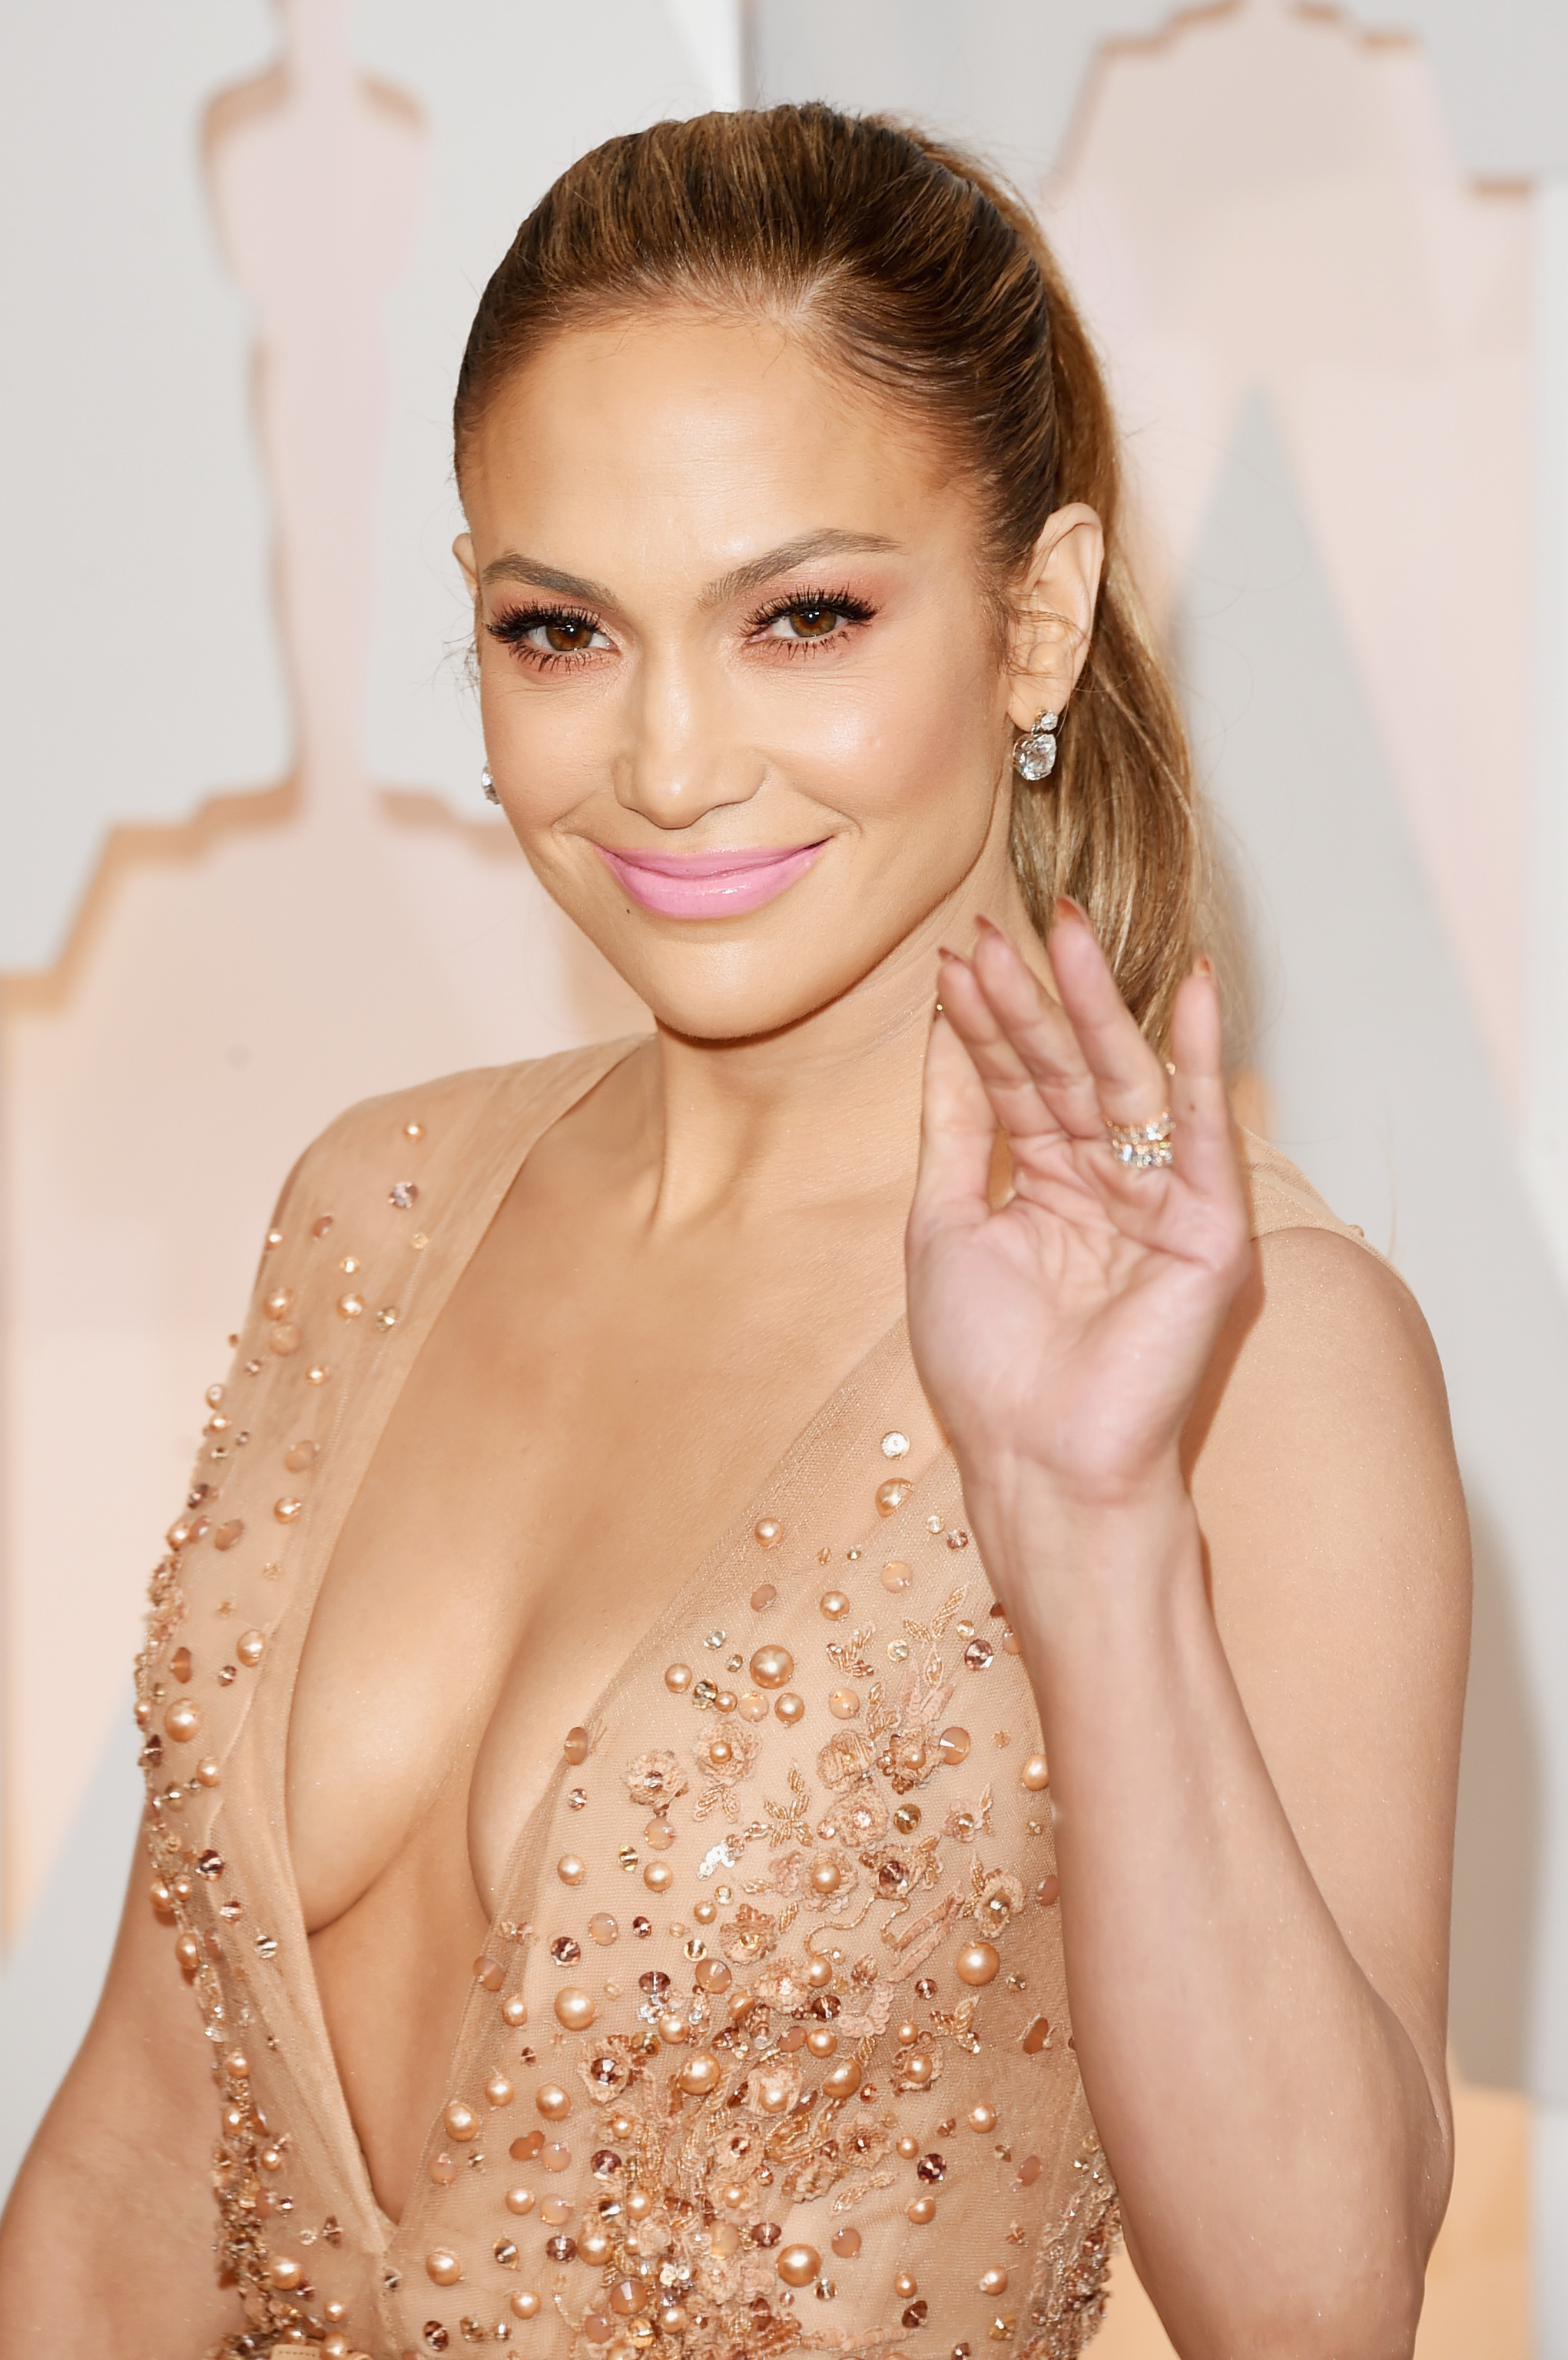 HOLLYWOOD, CA - FEBRUARY 22: Jennifer Lopez attends the 87th Annual Academy Awards at Hollywood & Highland Center on February 22, 2015 in Hollywood, California. (Photo by Jason Merritt/Getty Images)